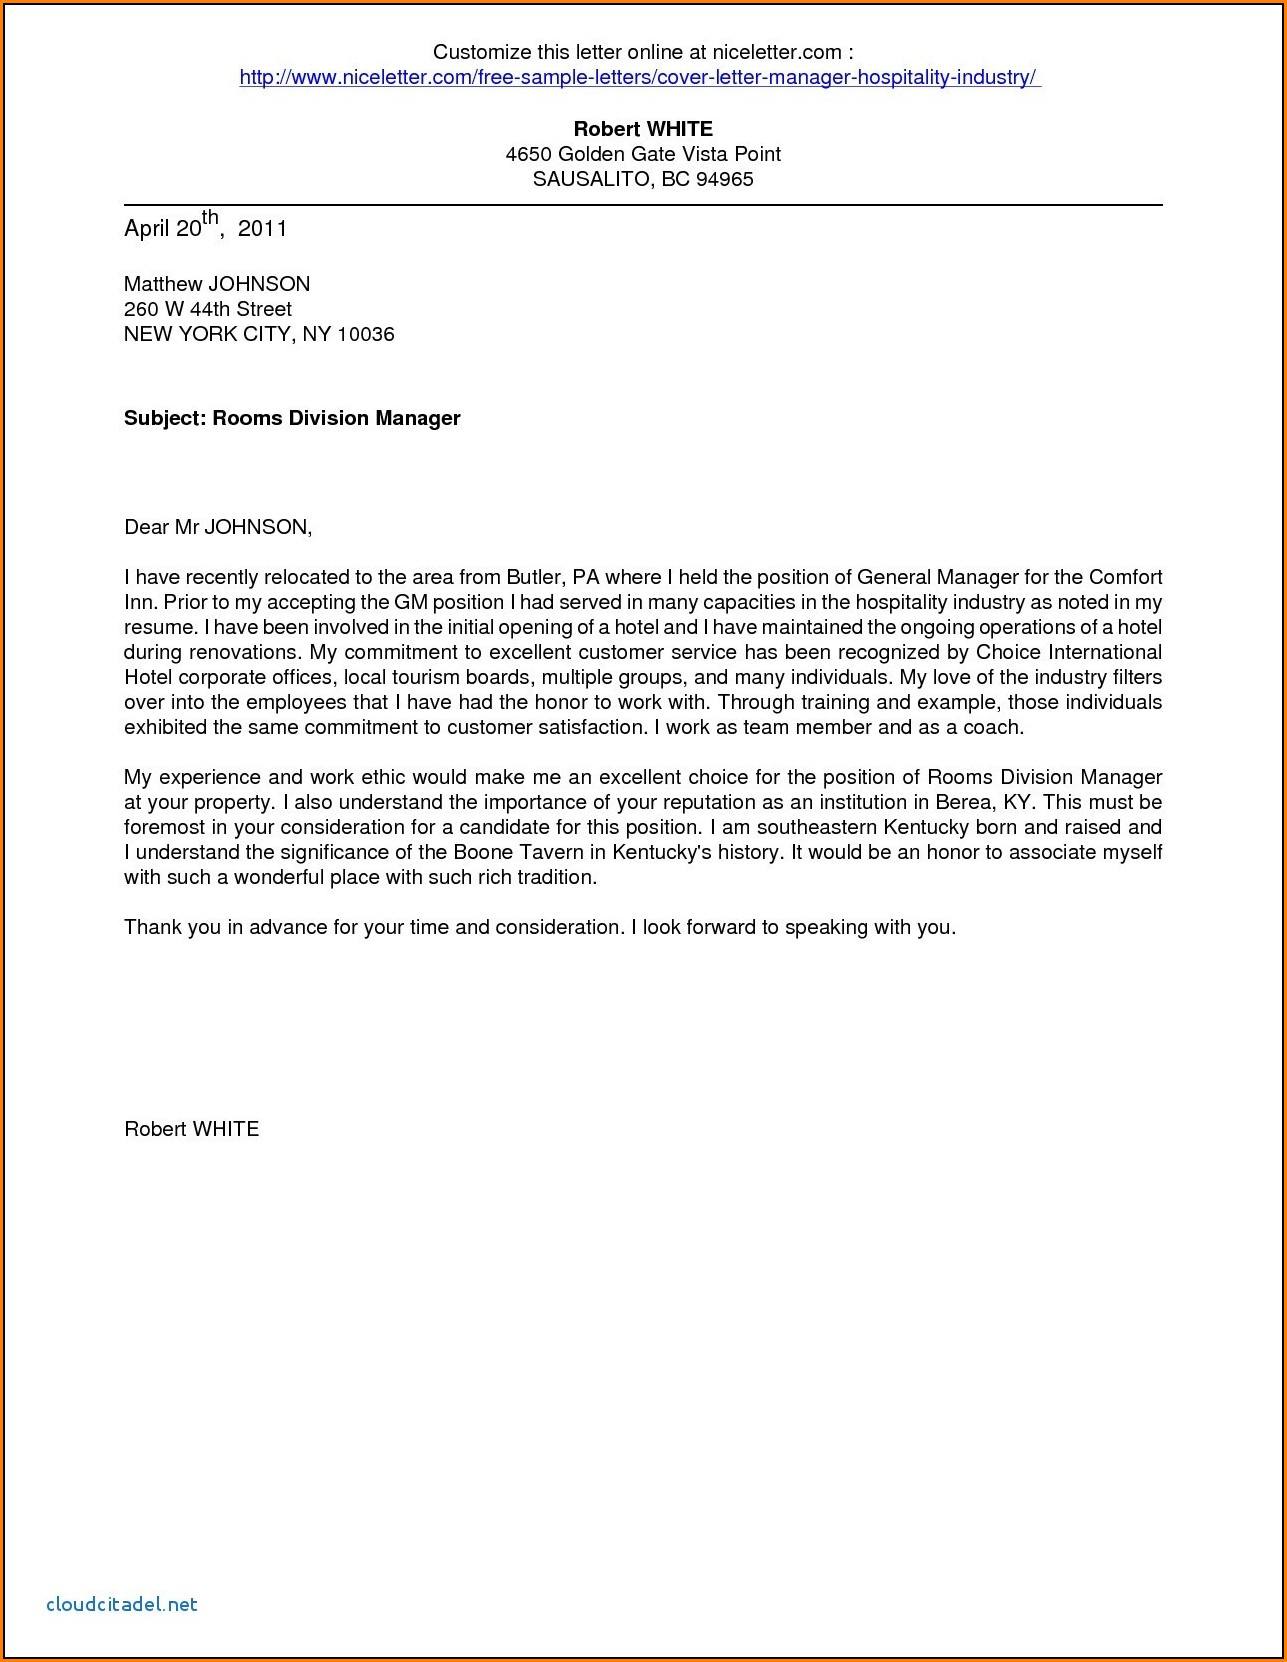 Example Application Letter For Hotel And Restaurant Management